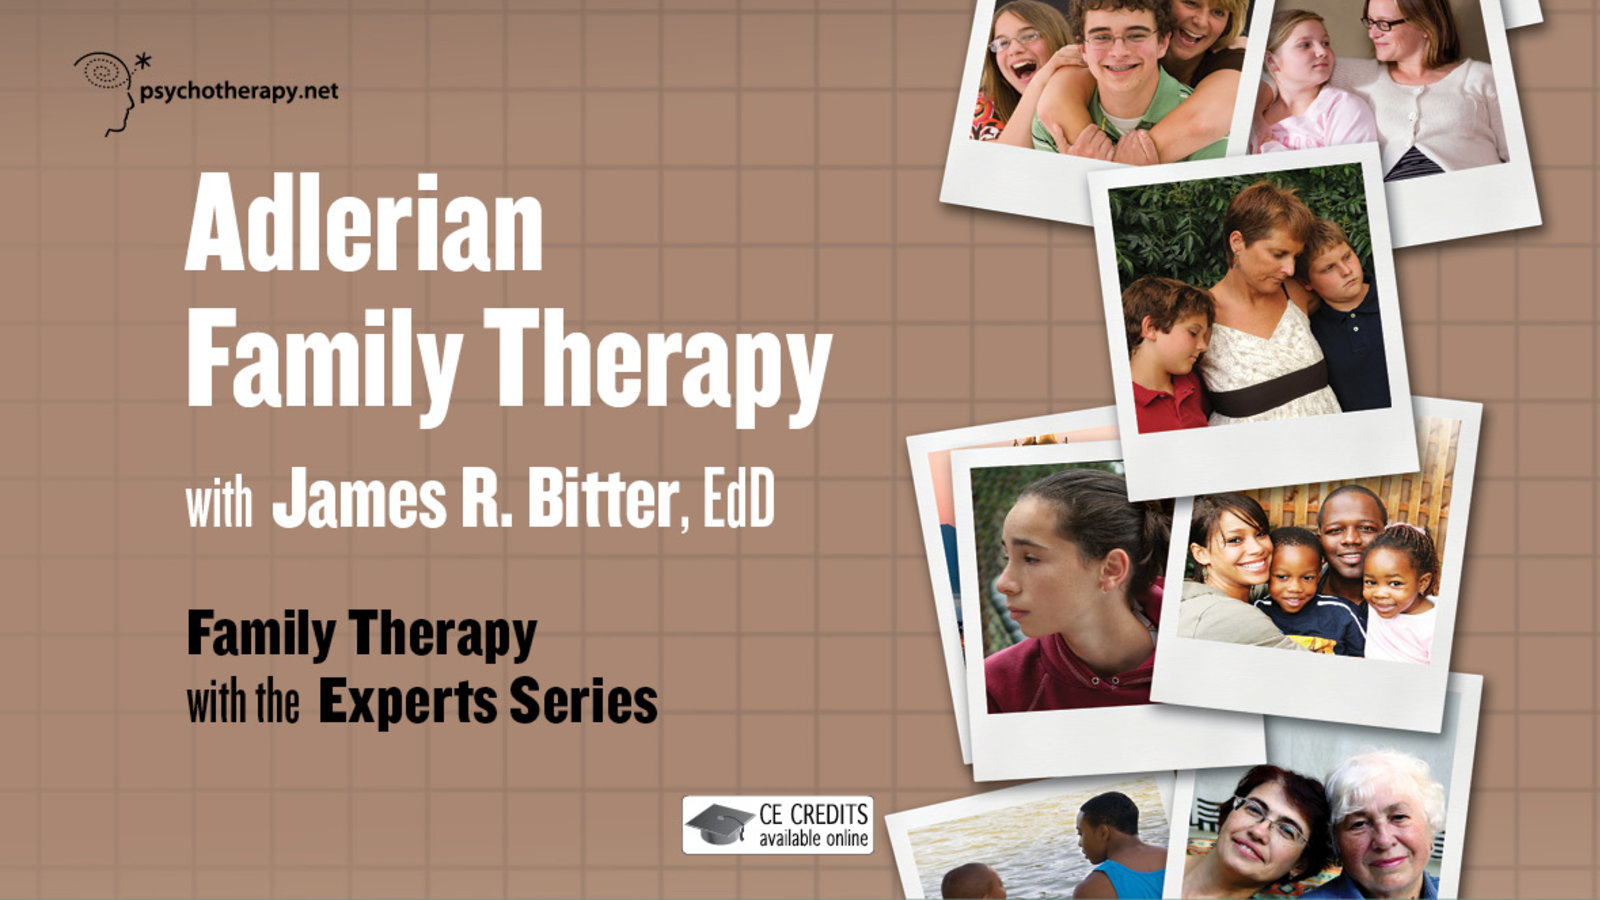 Adlerian Family Therapy - With James Bitter